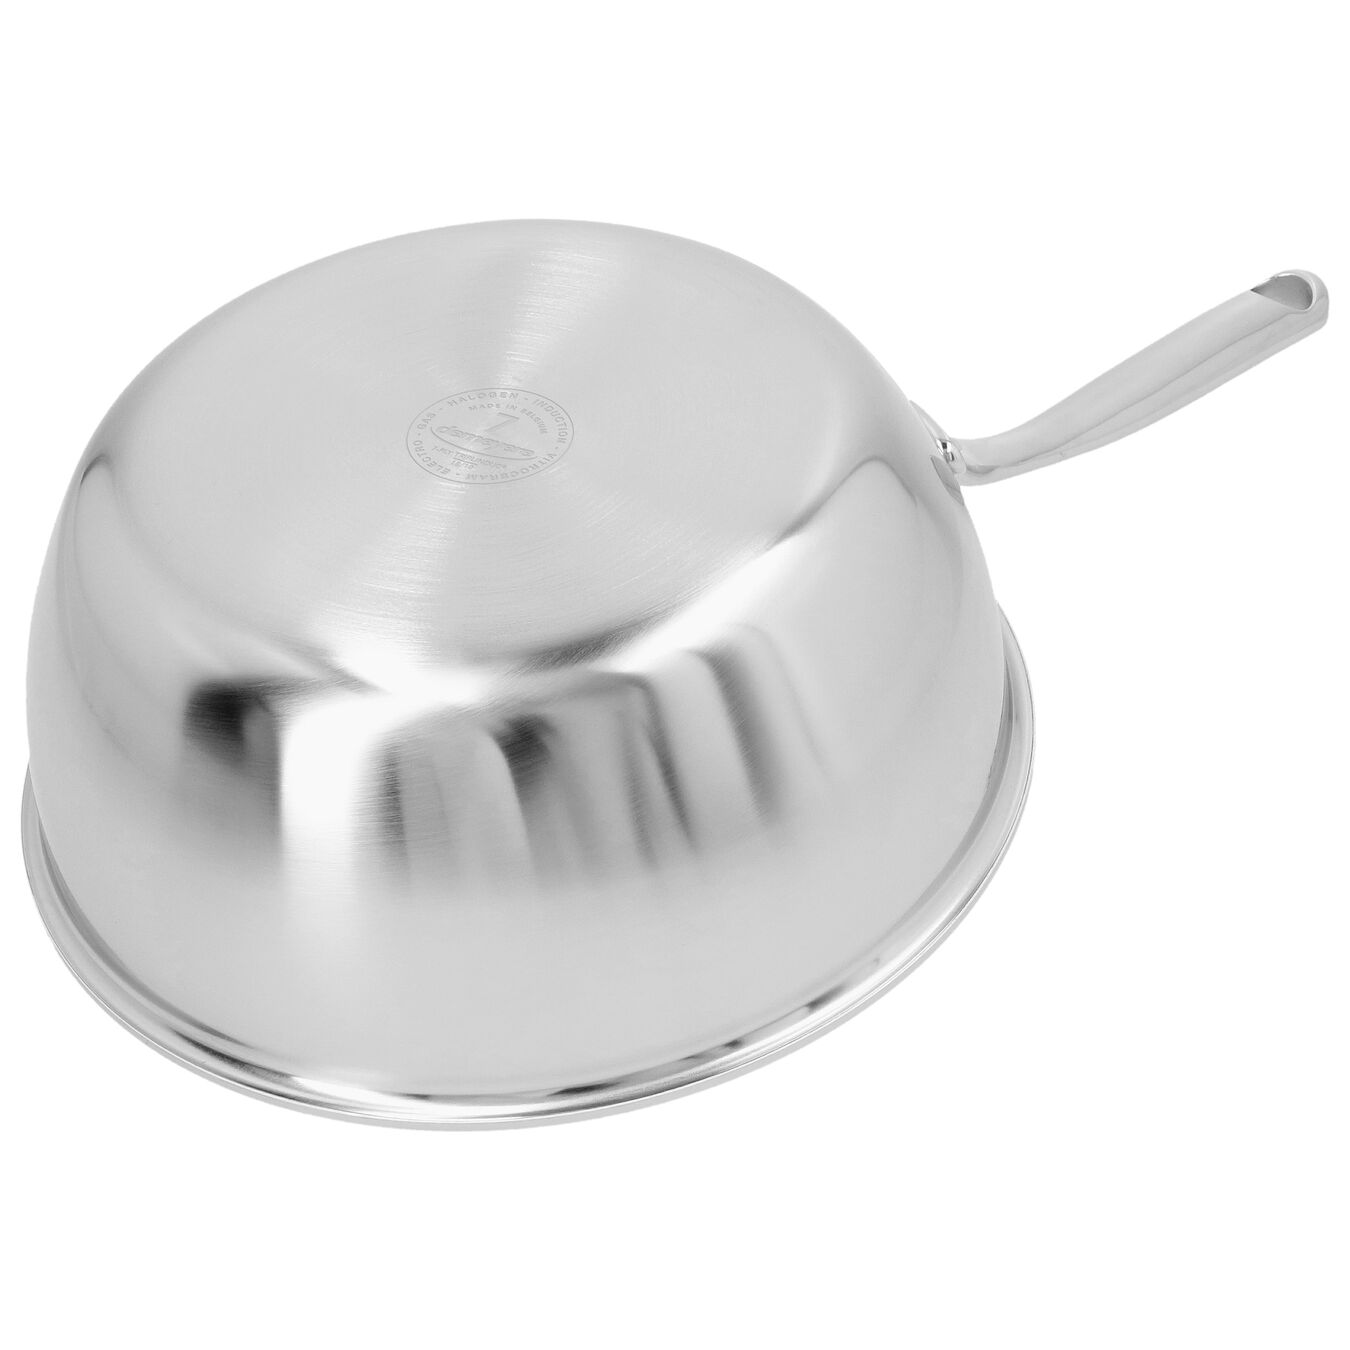 Sauteuse conique 22 cm, Inox 18/10,,large 4